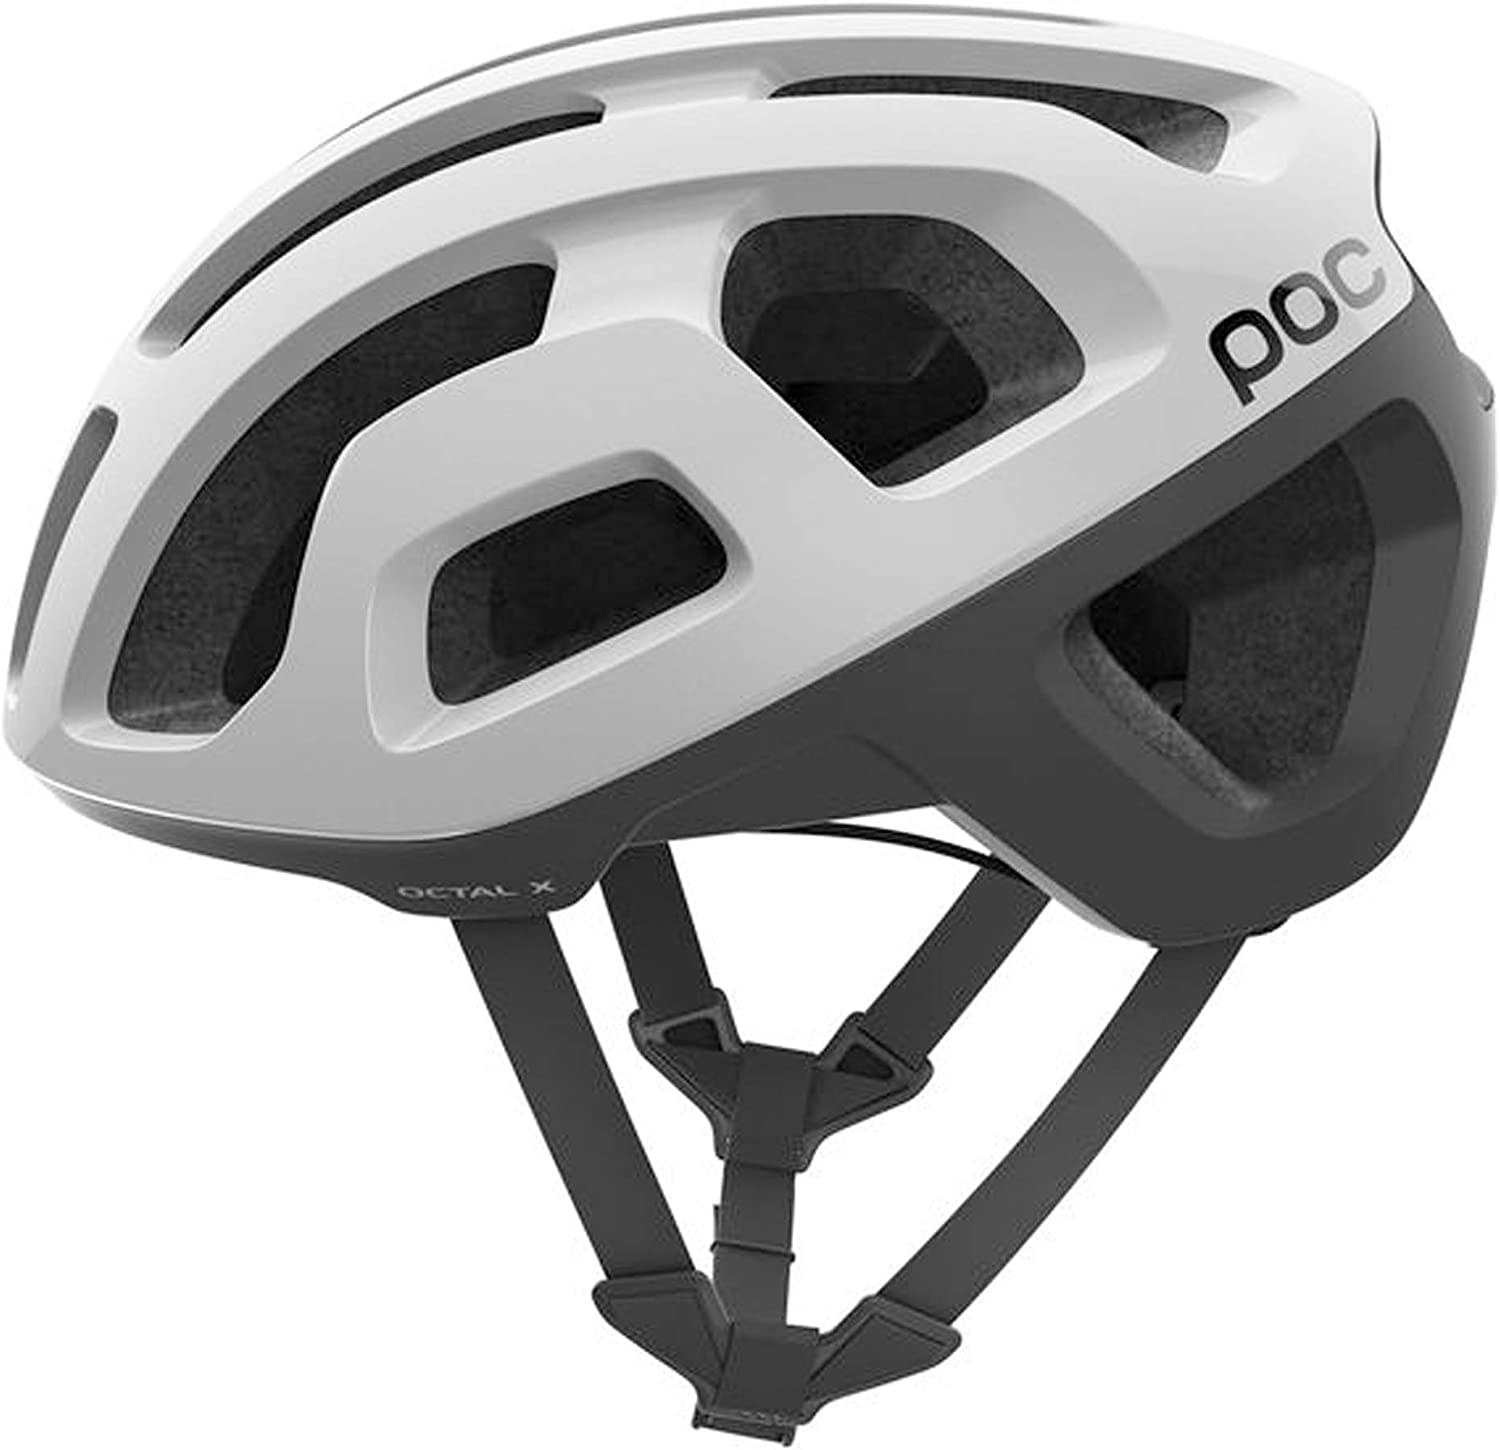 POC – Octal X, Helmet for Mountain Biking